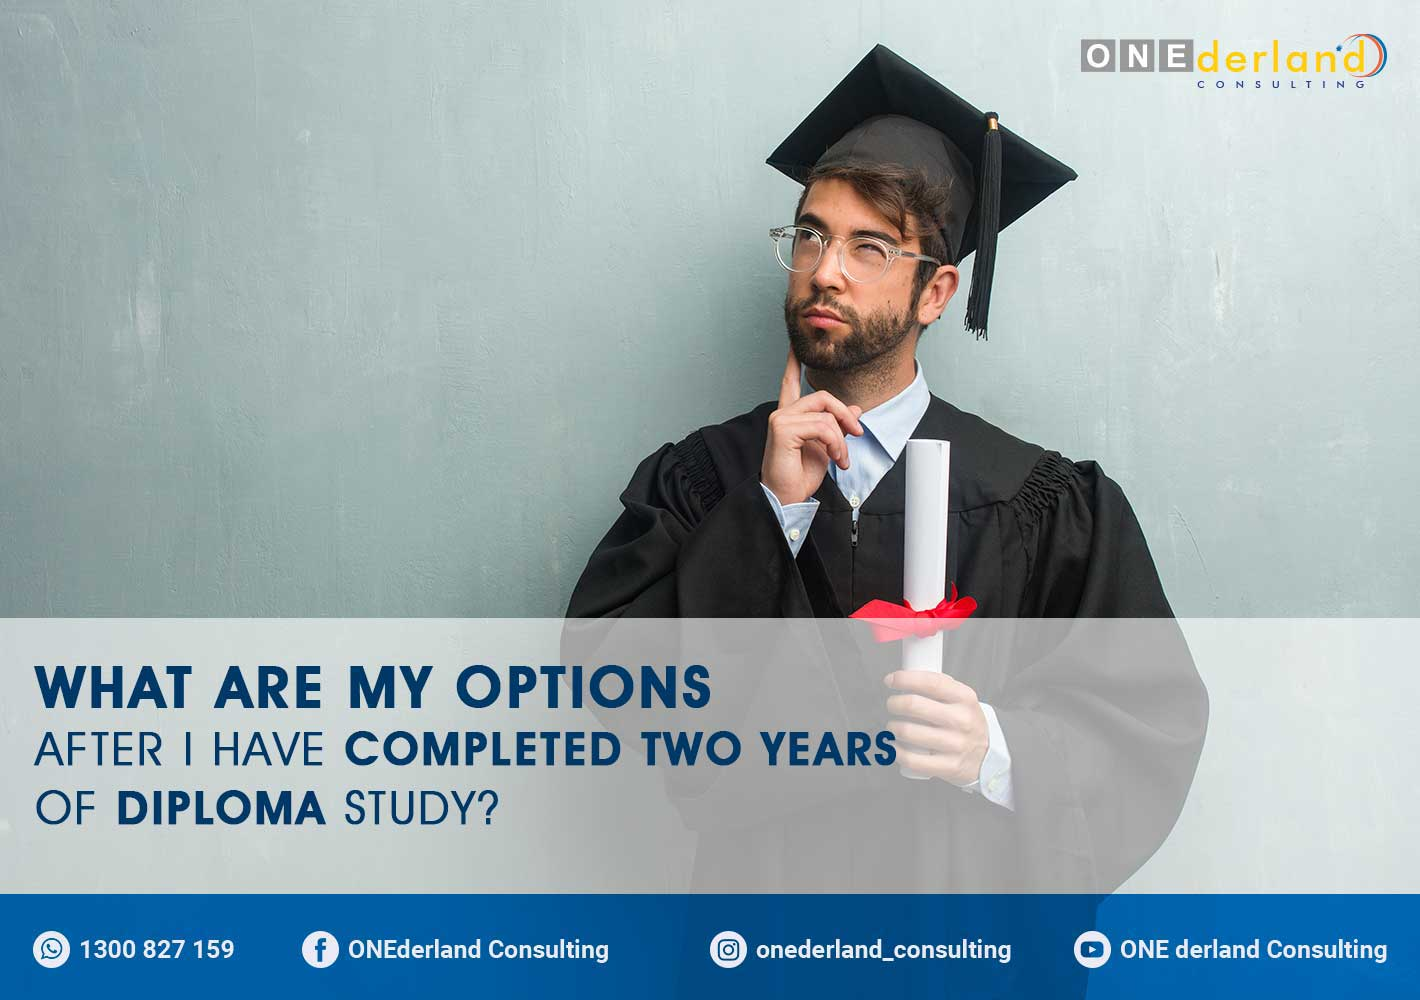 Visa Options After Completing Two Years of Diploma Study